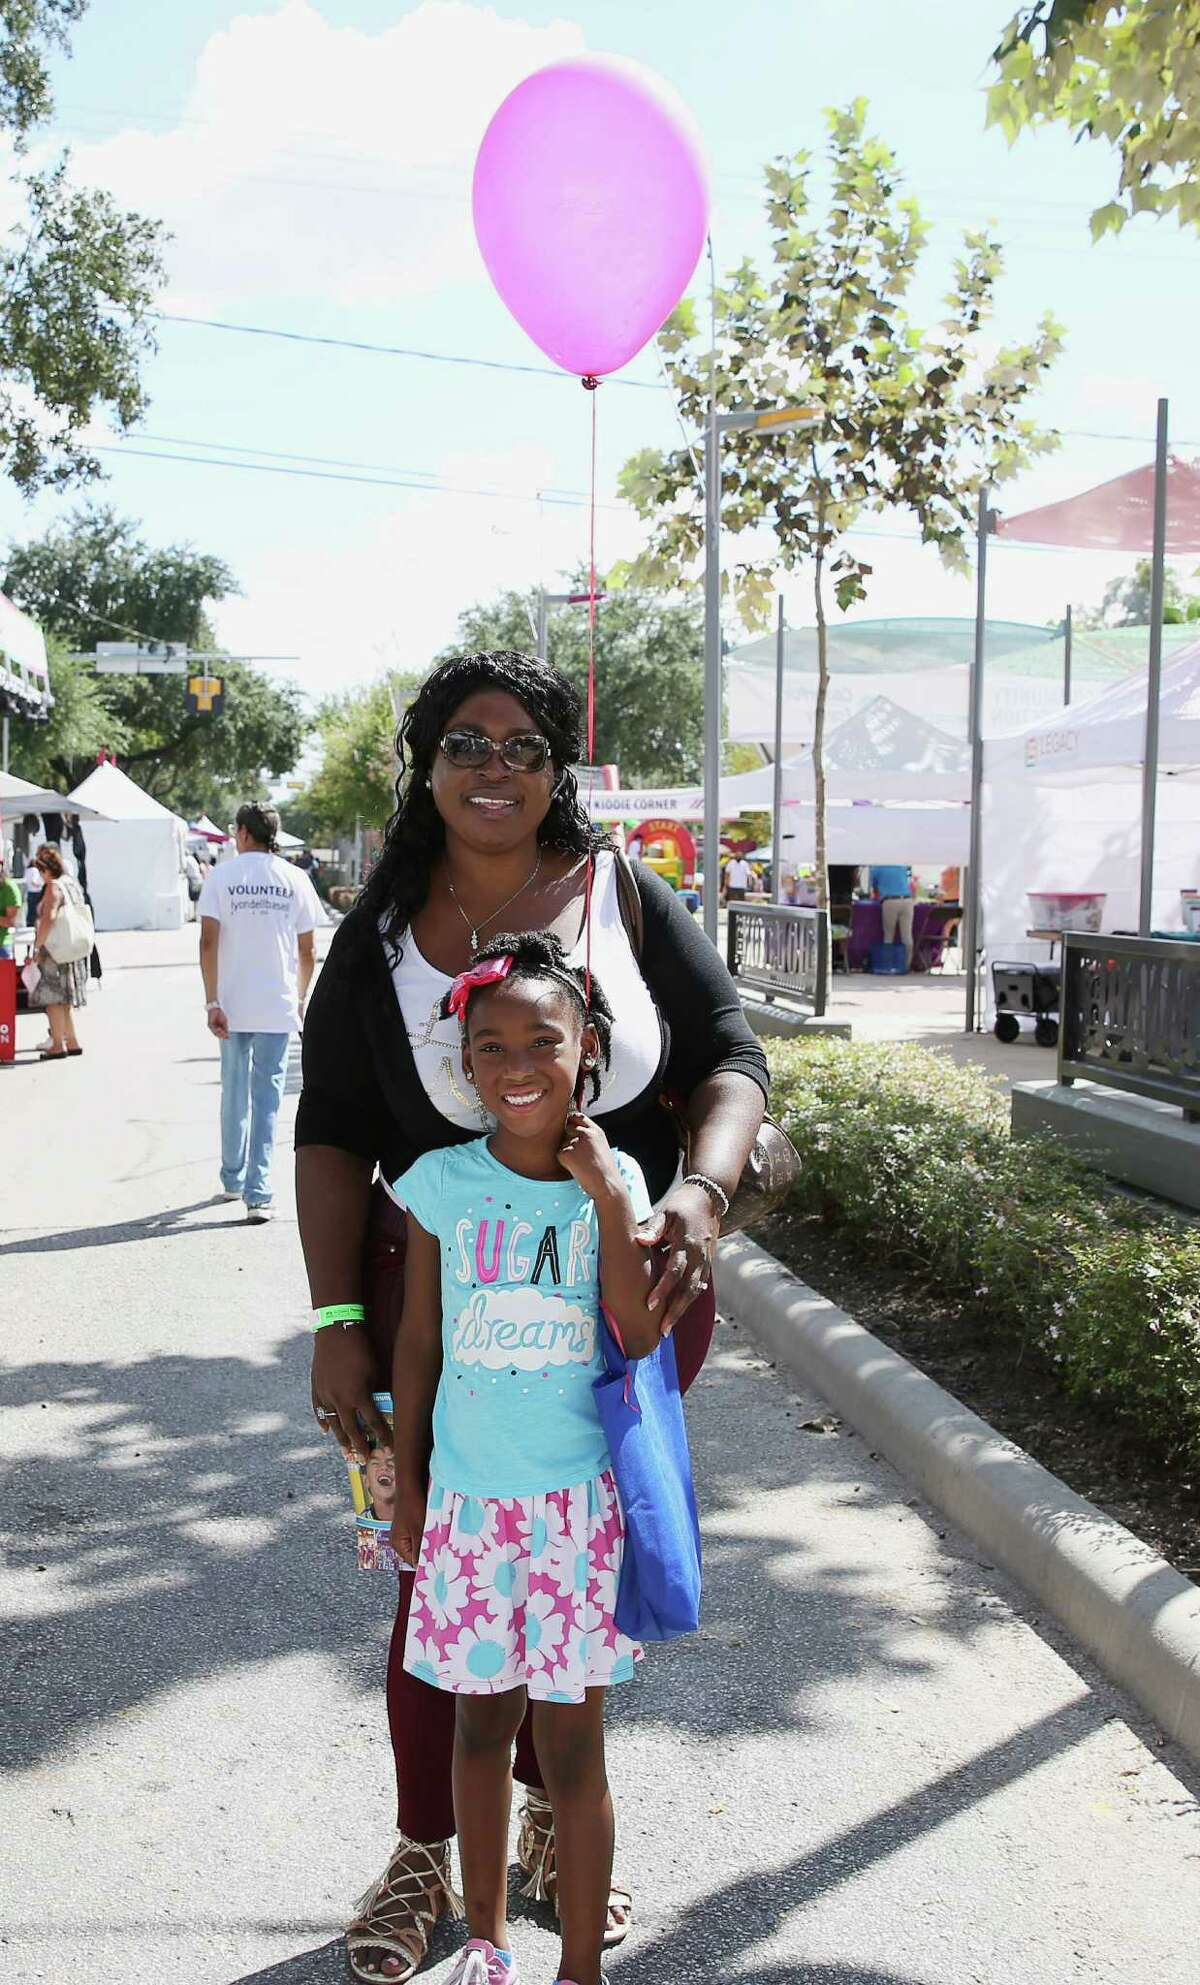 Festival goers pose for a photo at East End Street Festival Saturday, Oct. 15, 2016, in Houston. The festival was founded in 2011 to celebrate the legacy of Houston's historic East End.